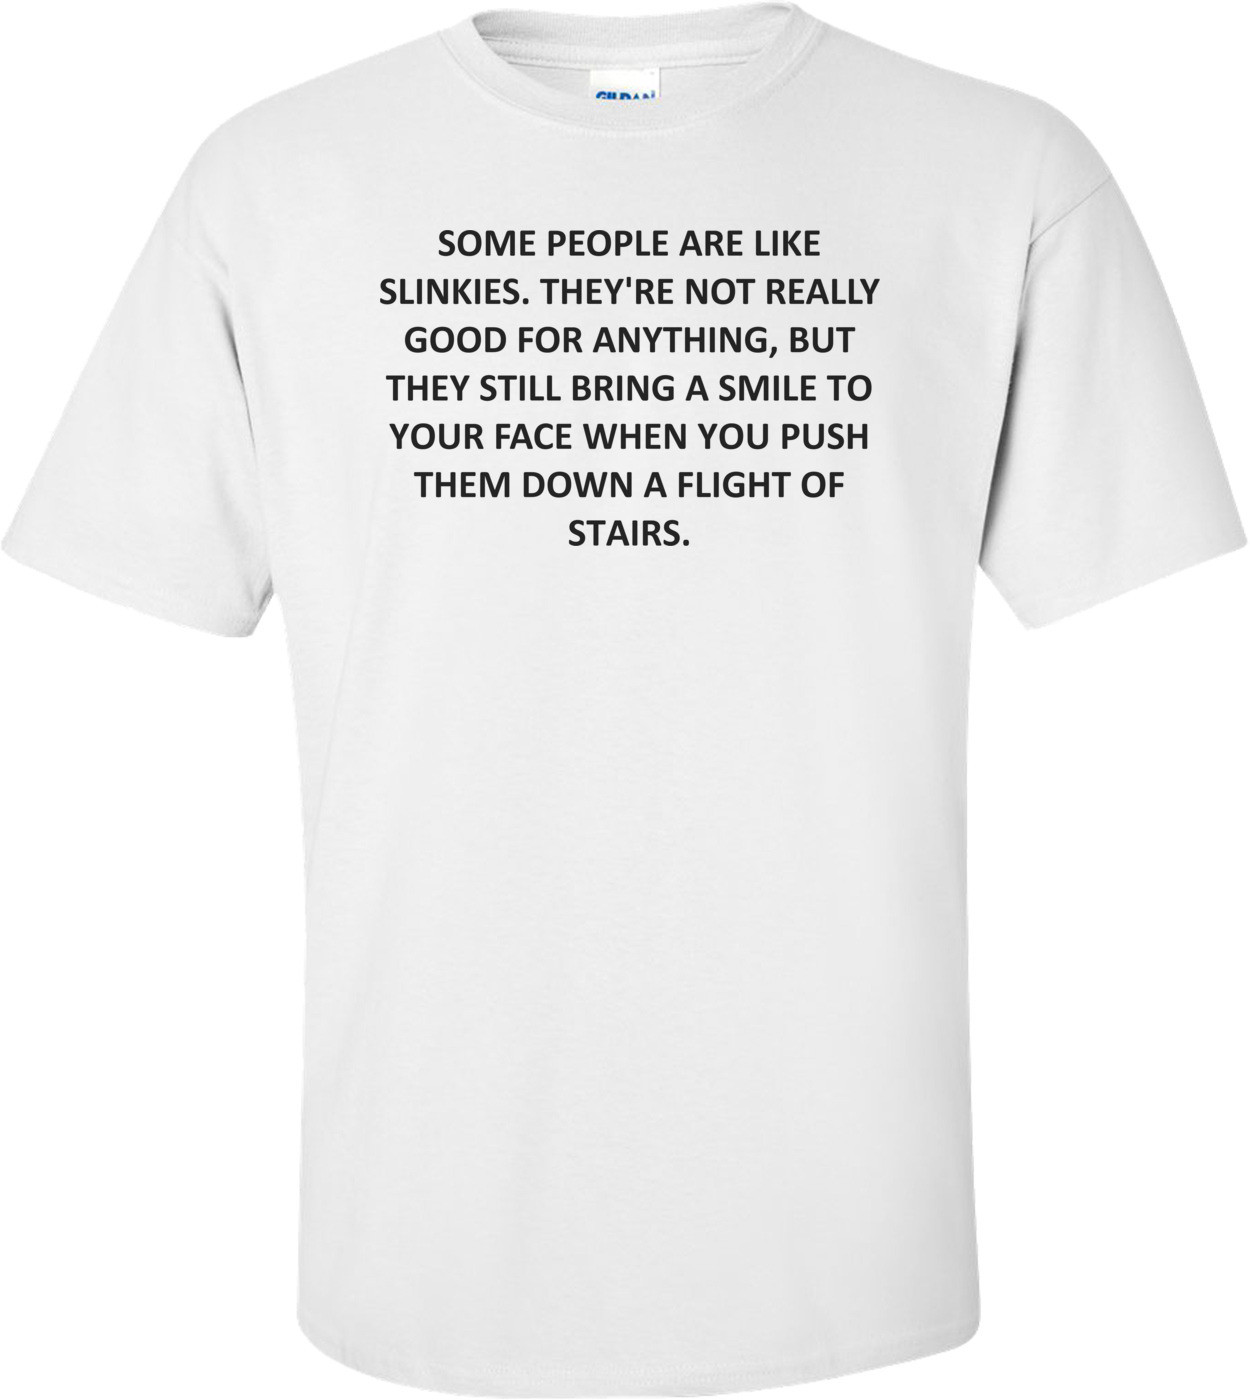 SOME PEOPLE ARE LIKE SLINKIES. THEY'RE NOT REALLY GOOD FOR ANYTHING, BUT THEY STILL BRING A SMILE TO YOUR FACE WHEN YOU PUSH THEM DOWN A FLIGHT OF STAIRS. Shirt